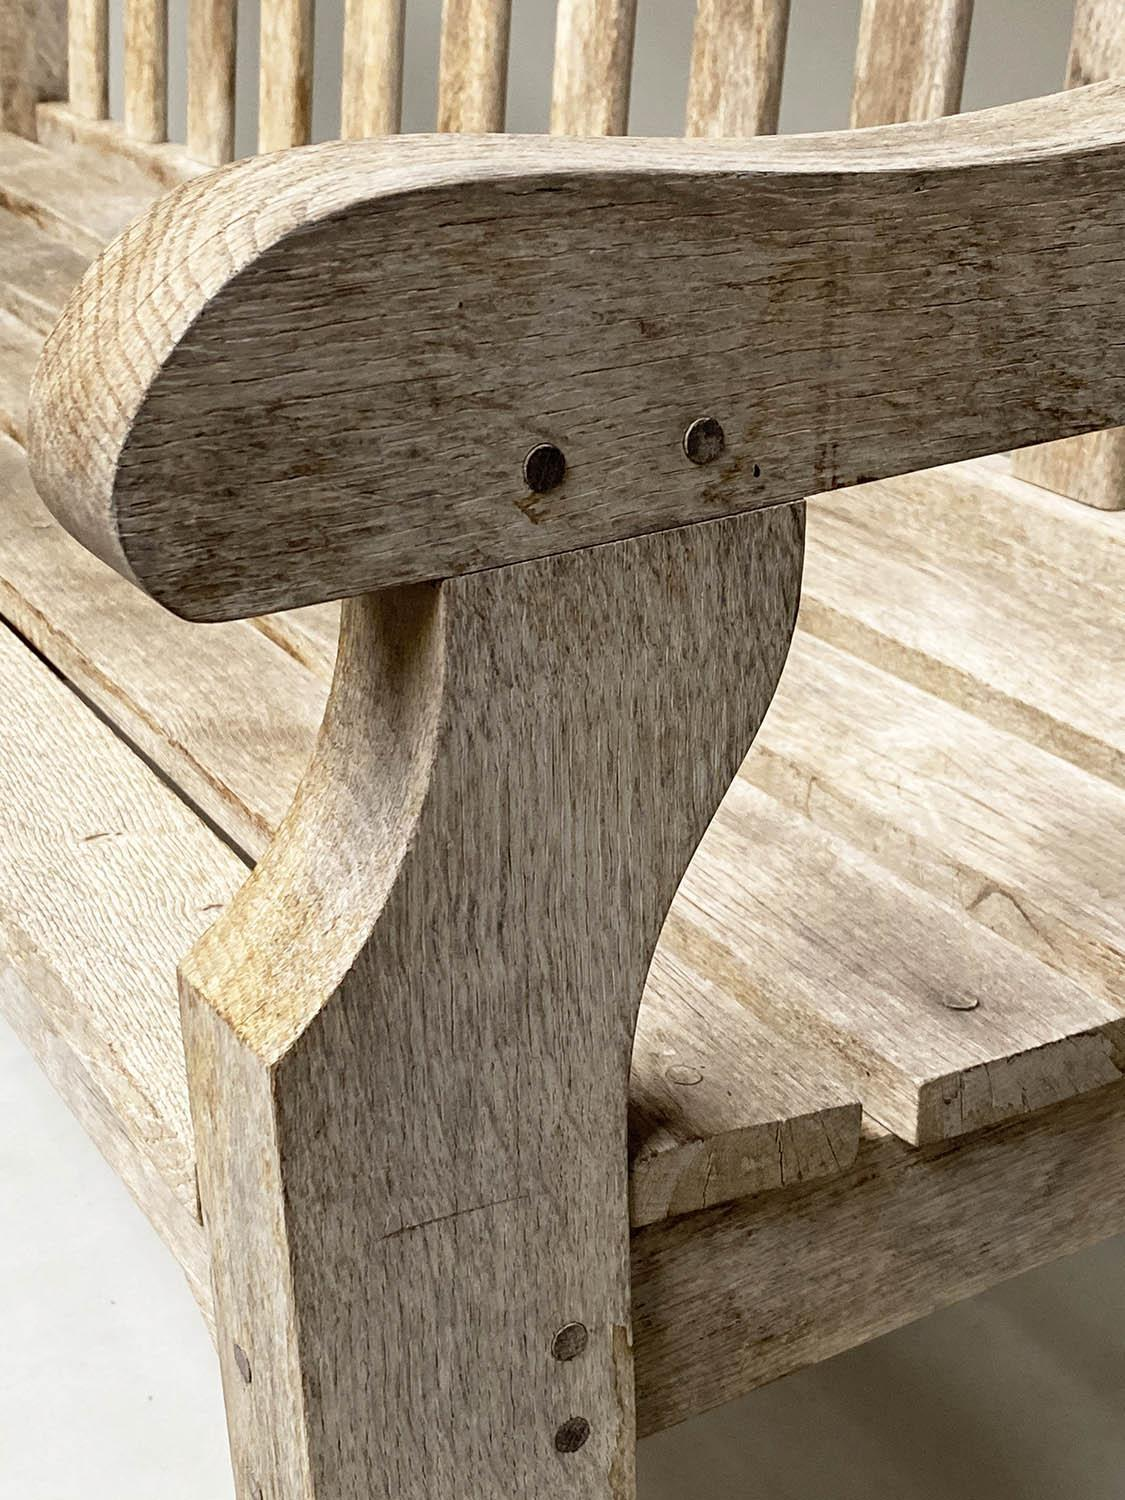 ENGLISH GARDEN BENCH, weathered English oak of substantial and slatted construction, 168cm W. - Image 3 of 8